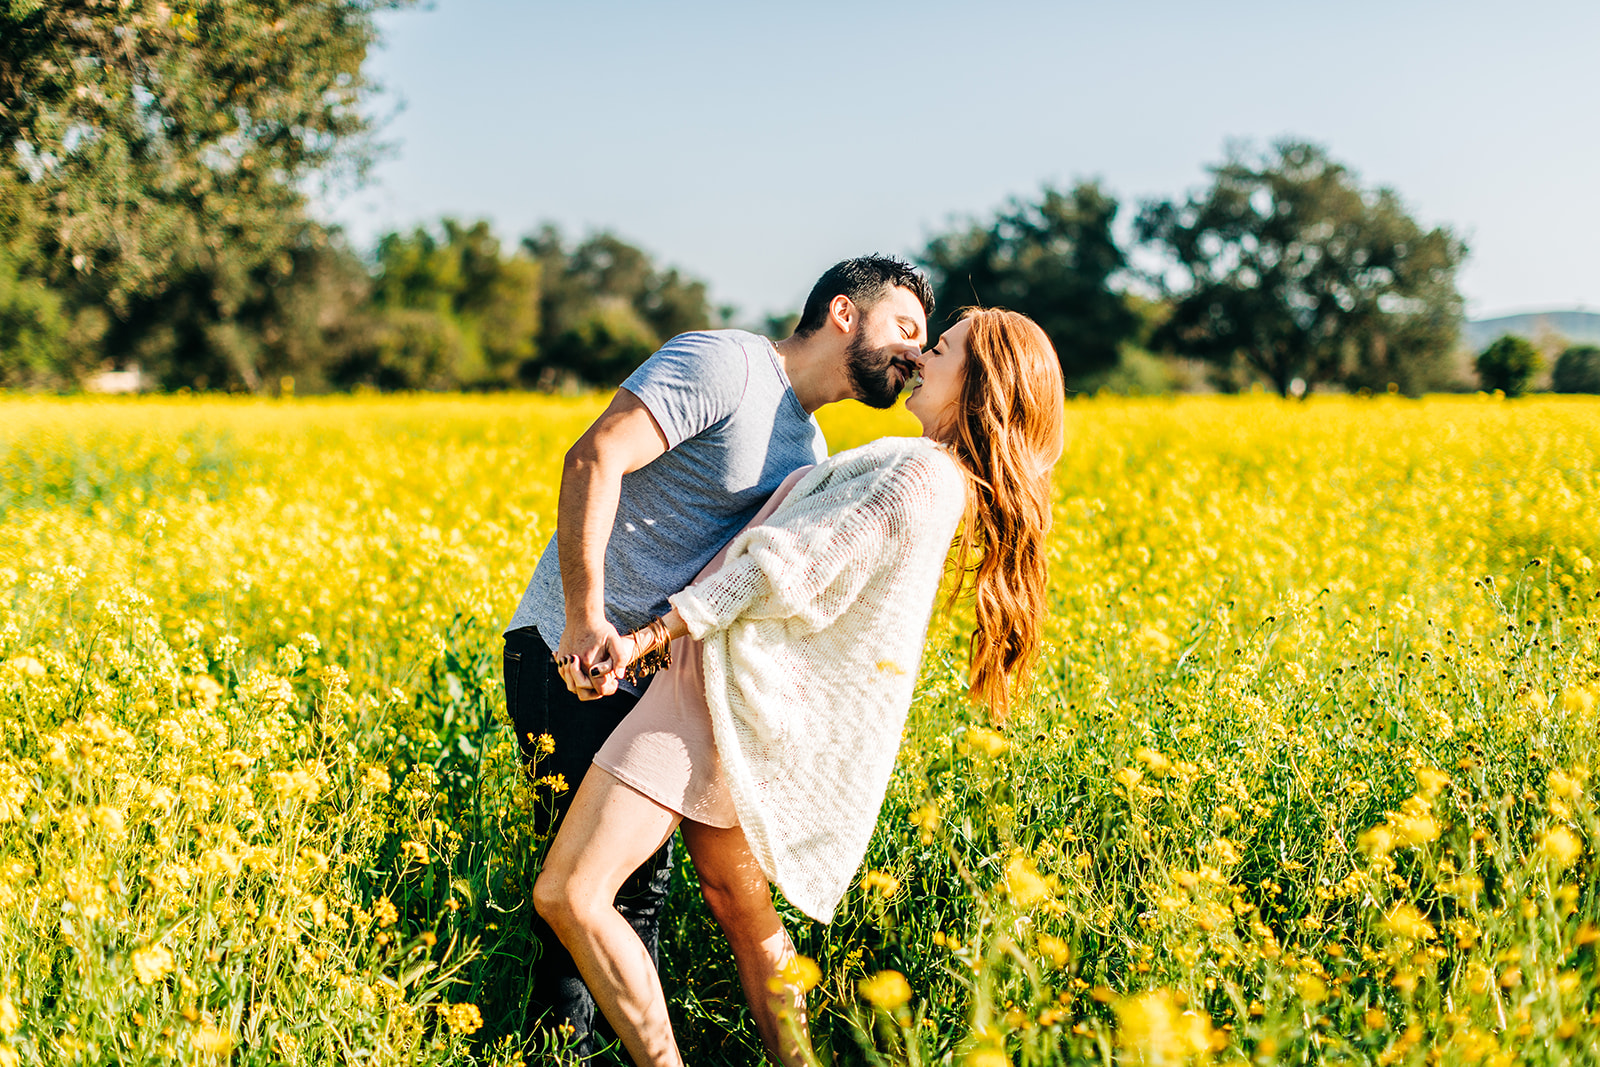 Katie-Yovin_Richard_Superbloom-Engagement-Photos_Clarisse-Rae_Southern-California-Wedding-Photographer-Orange-County-Engagement-Photos-4